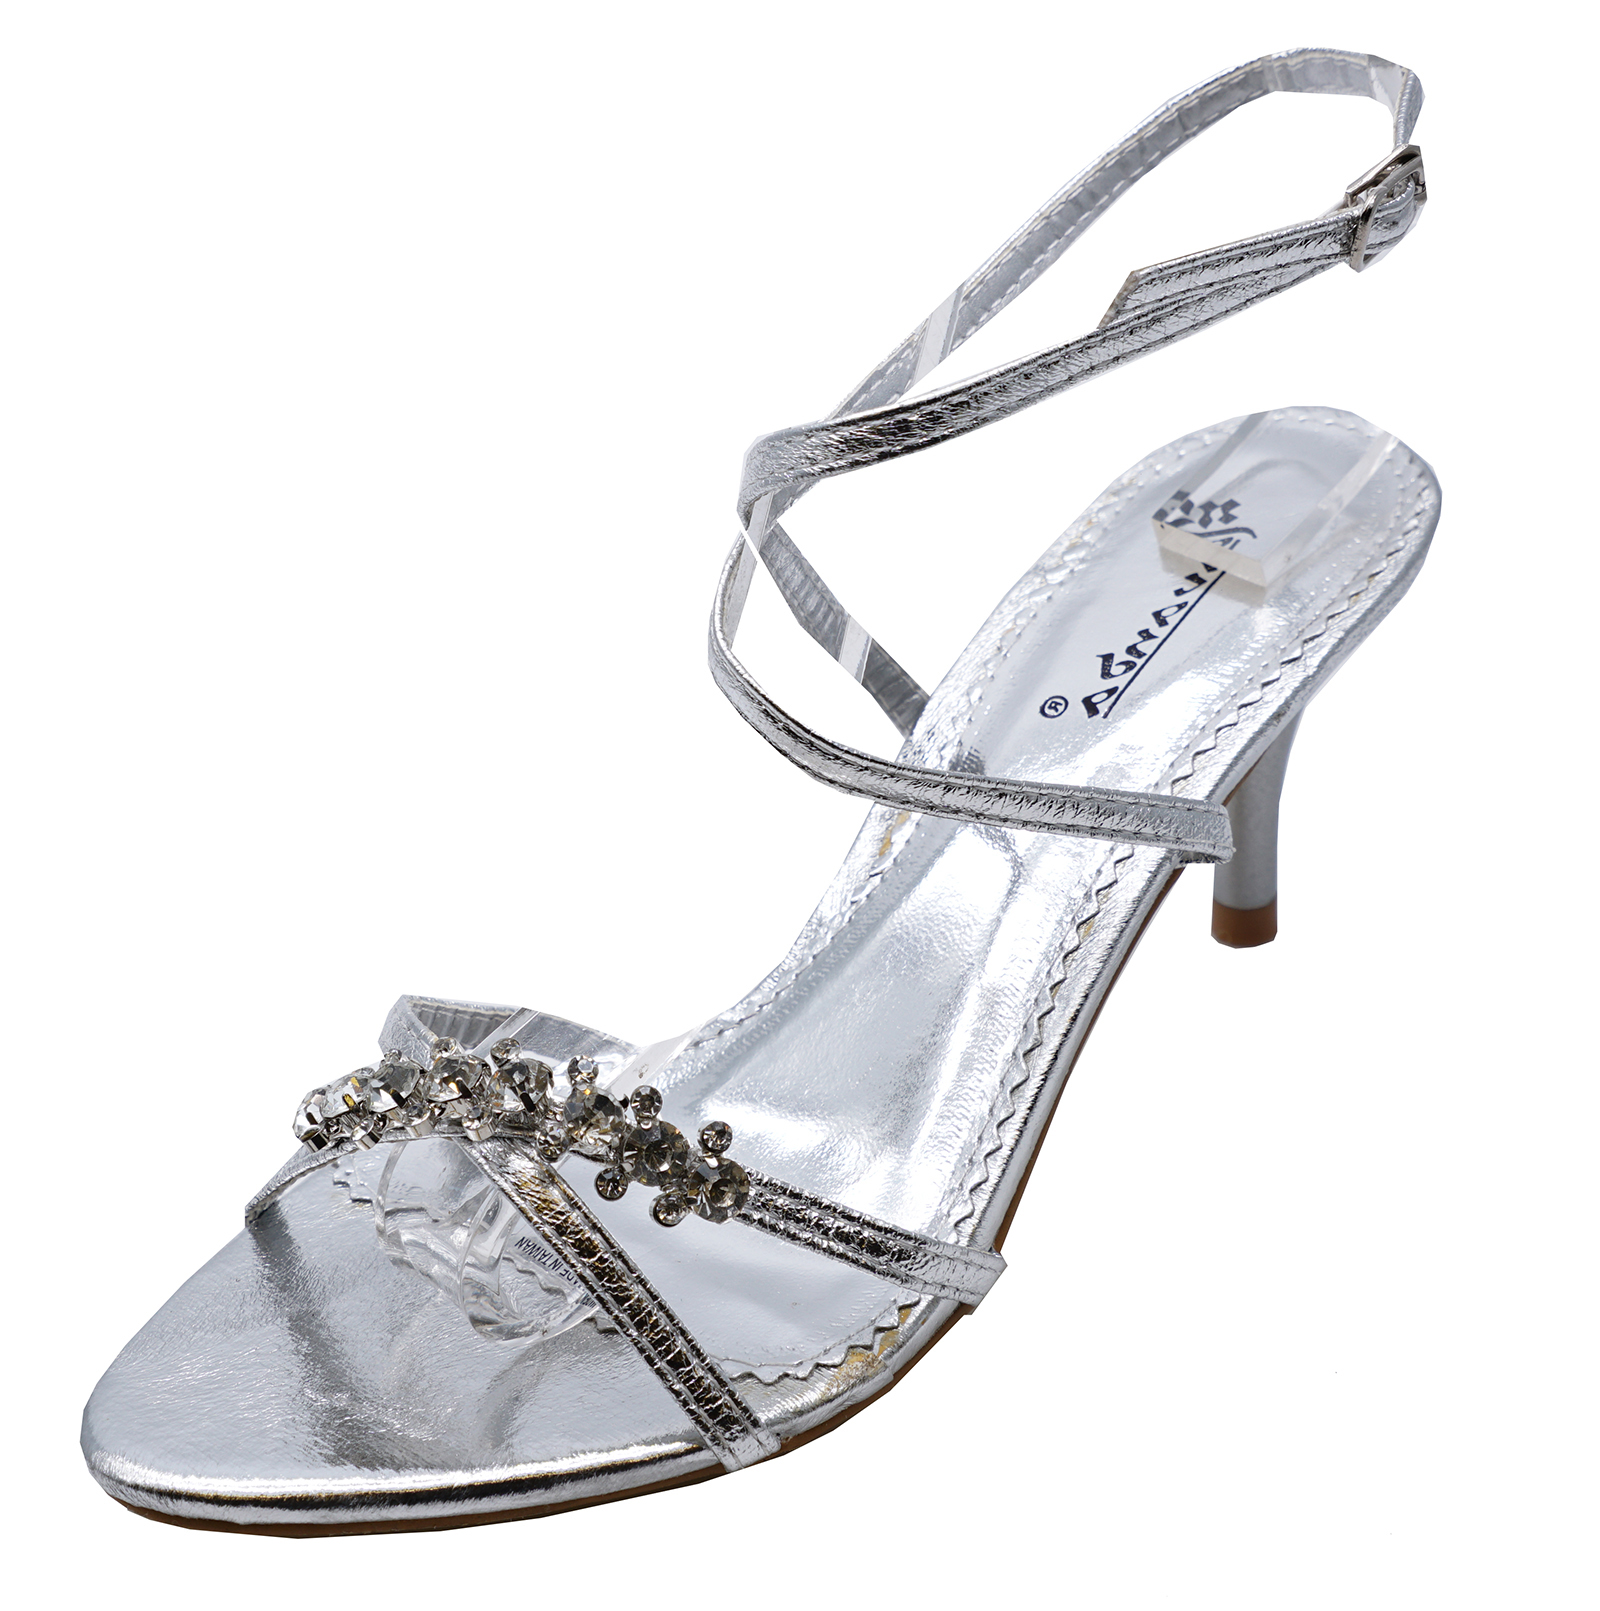 Sentinel LADIES SILVER KITTEN HEEL STRAPPY EVENING DIAMANTE ELEGANT SANDALS  SHOES UK 3-8